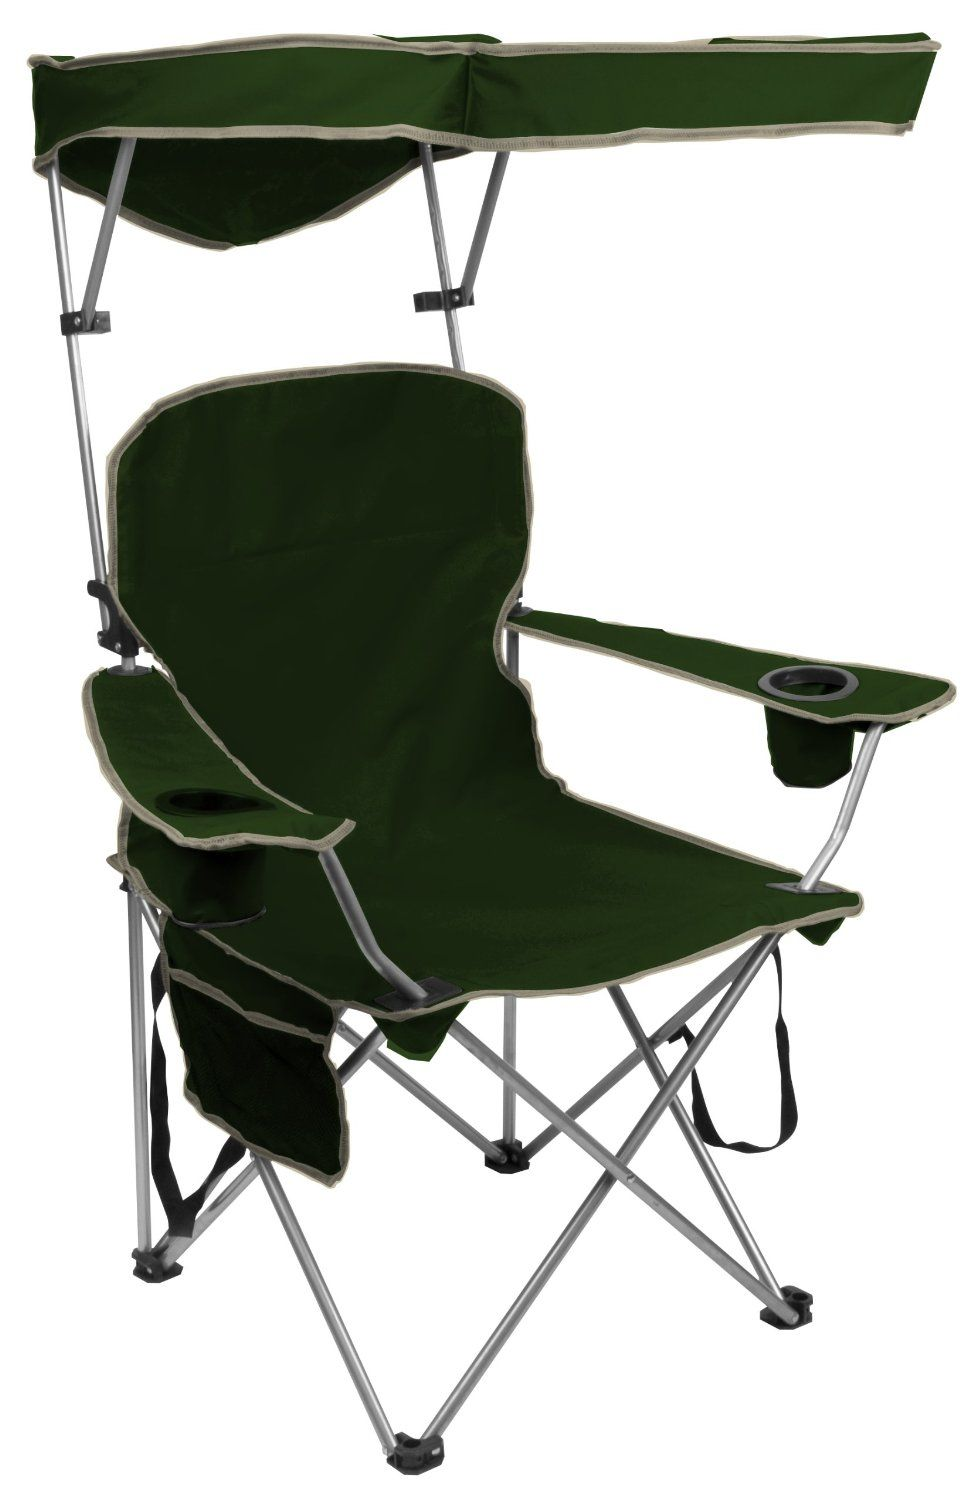 Quik Shade Adjustable Canopy Folding C& Chair * New and awesome outdoor gear awaits you  sc 1 st  Pinterest & Quik Shade Adjustable Canopy Folding Camp Chair * New and awesome ...